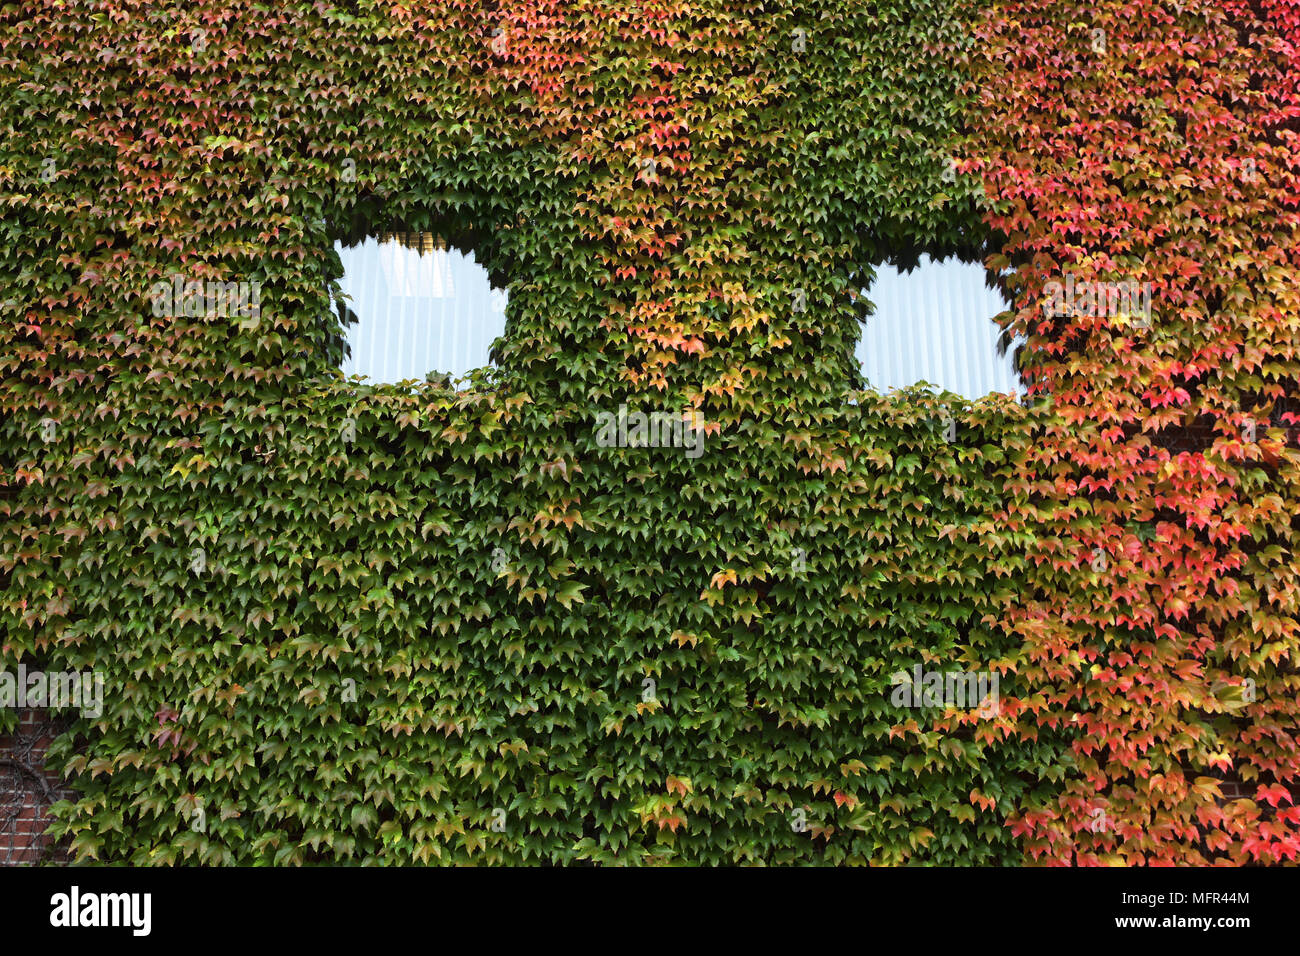 Redish ivy covers a building in the late autumn season, Ontario, Canada. - Stock Image